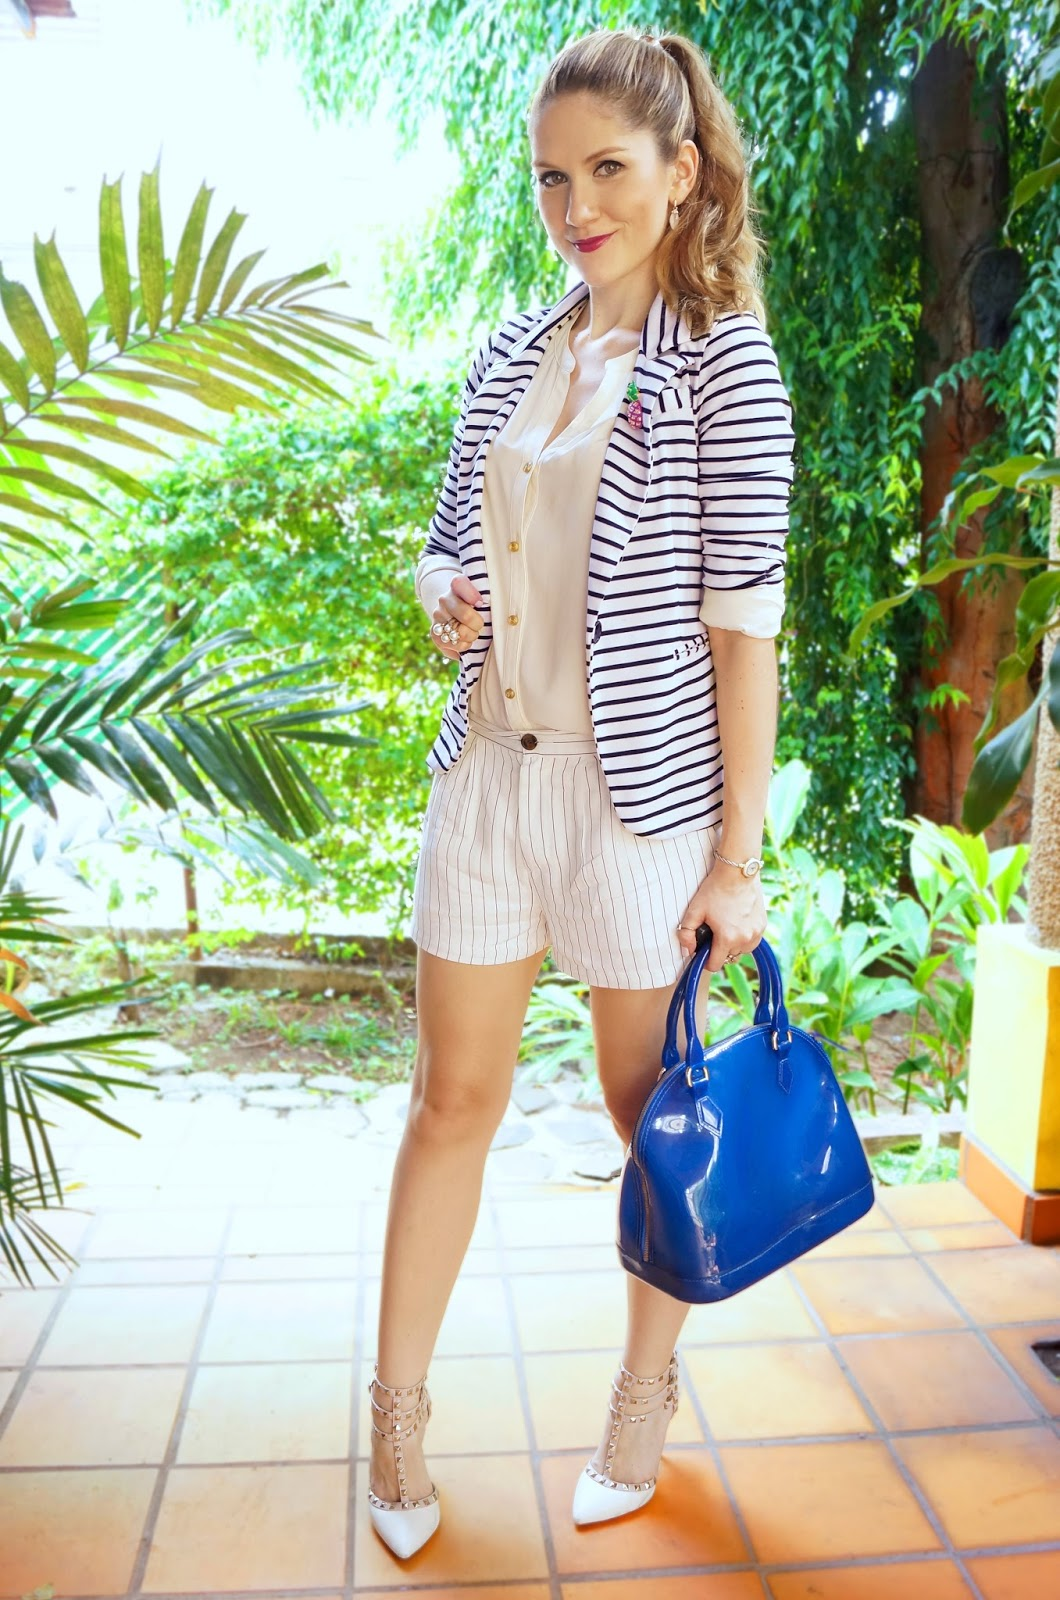 Shorts suits are a great option to look polished and chic during the Summer!